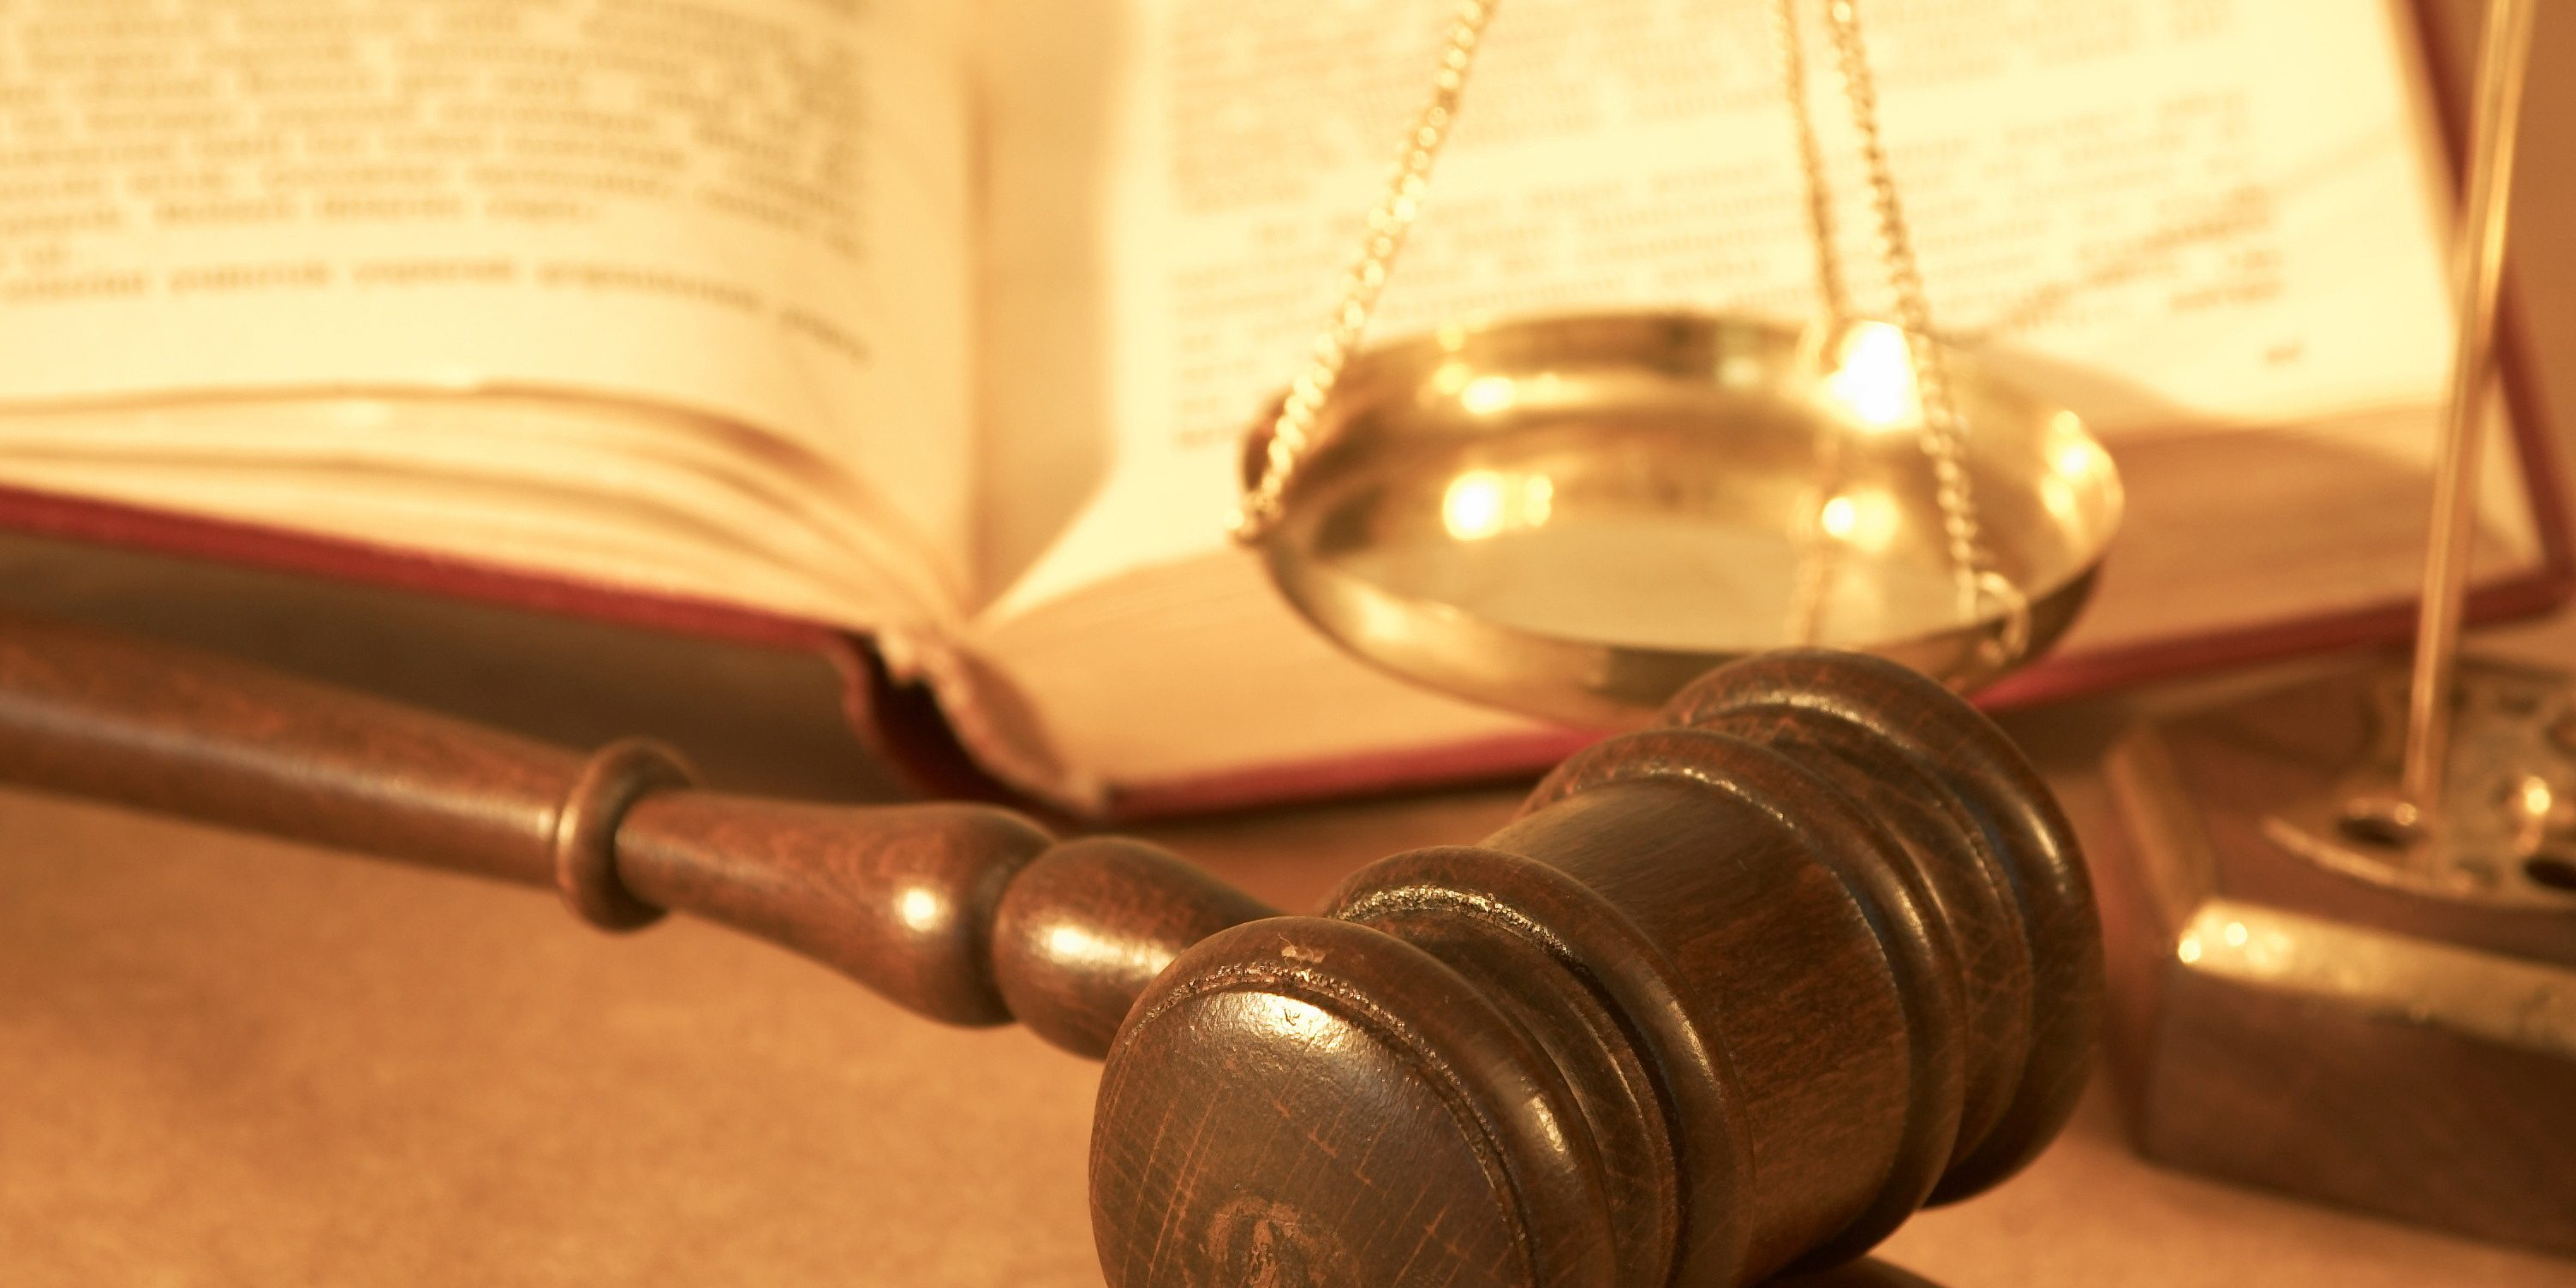 gavel and book close up, shallow dof